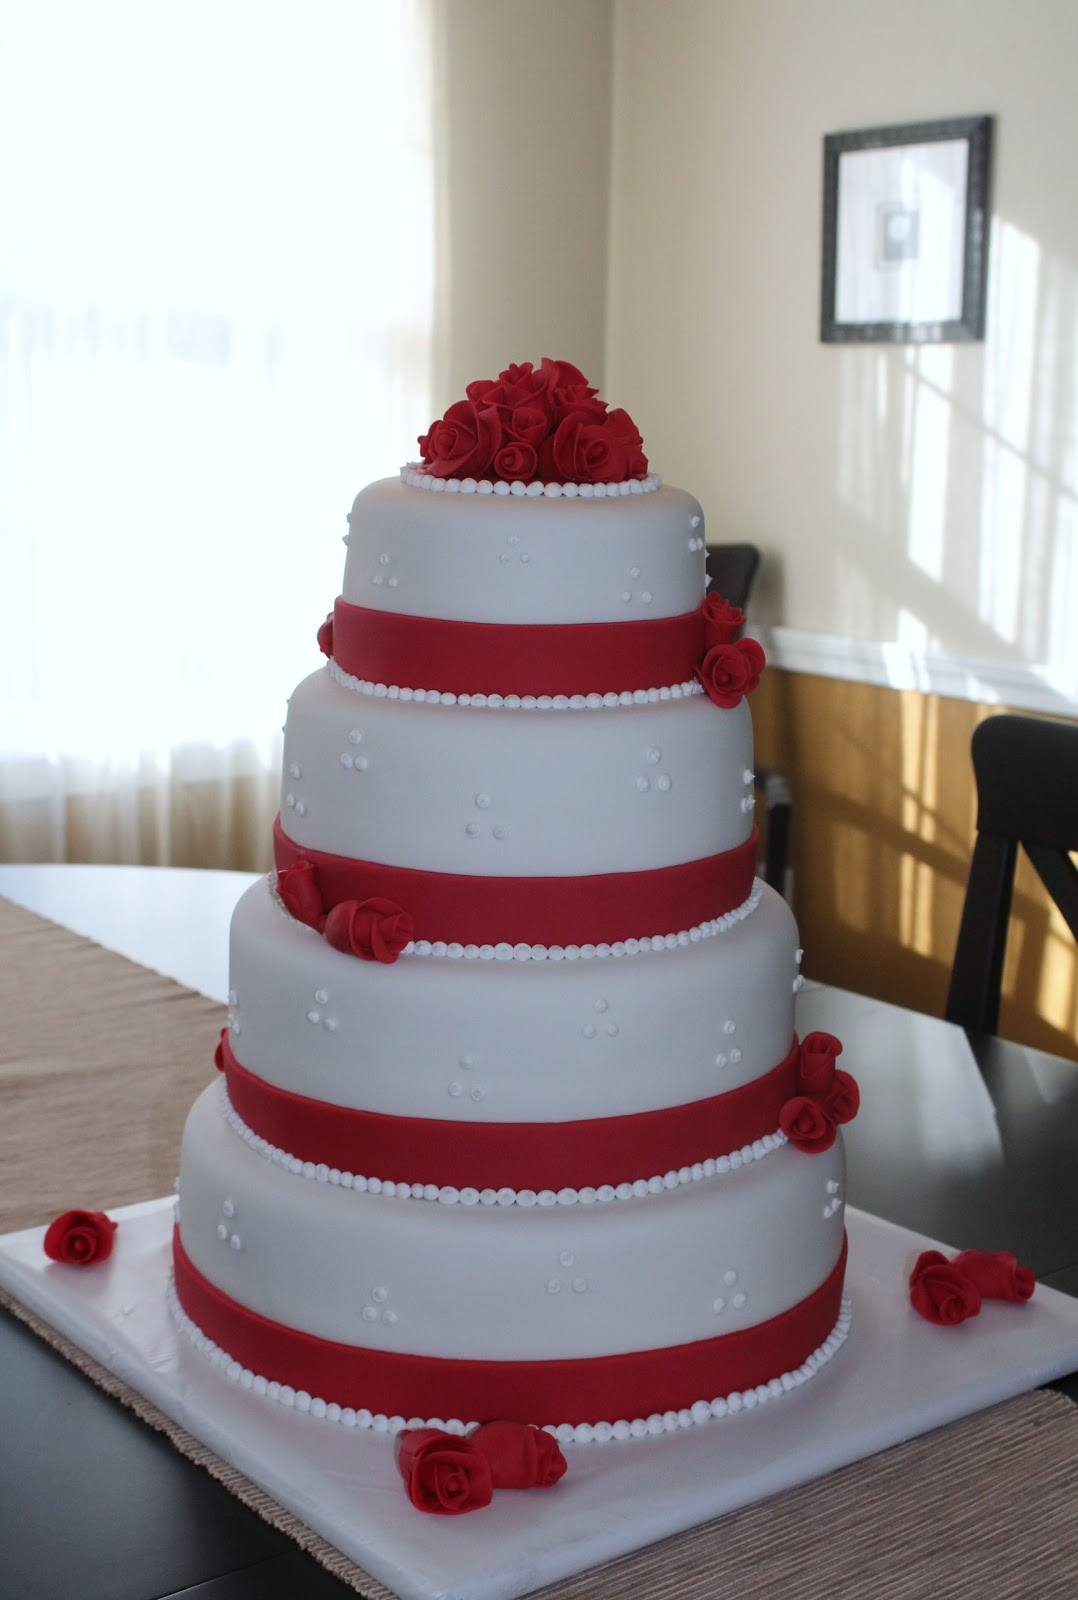 Creative Cakes by Lynn Red Roses Wedding Cake